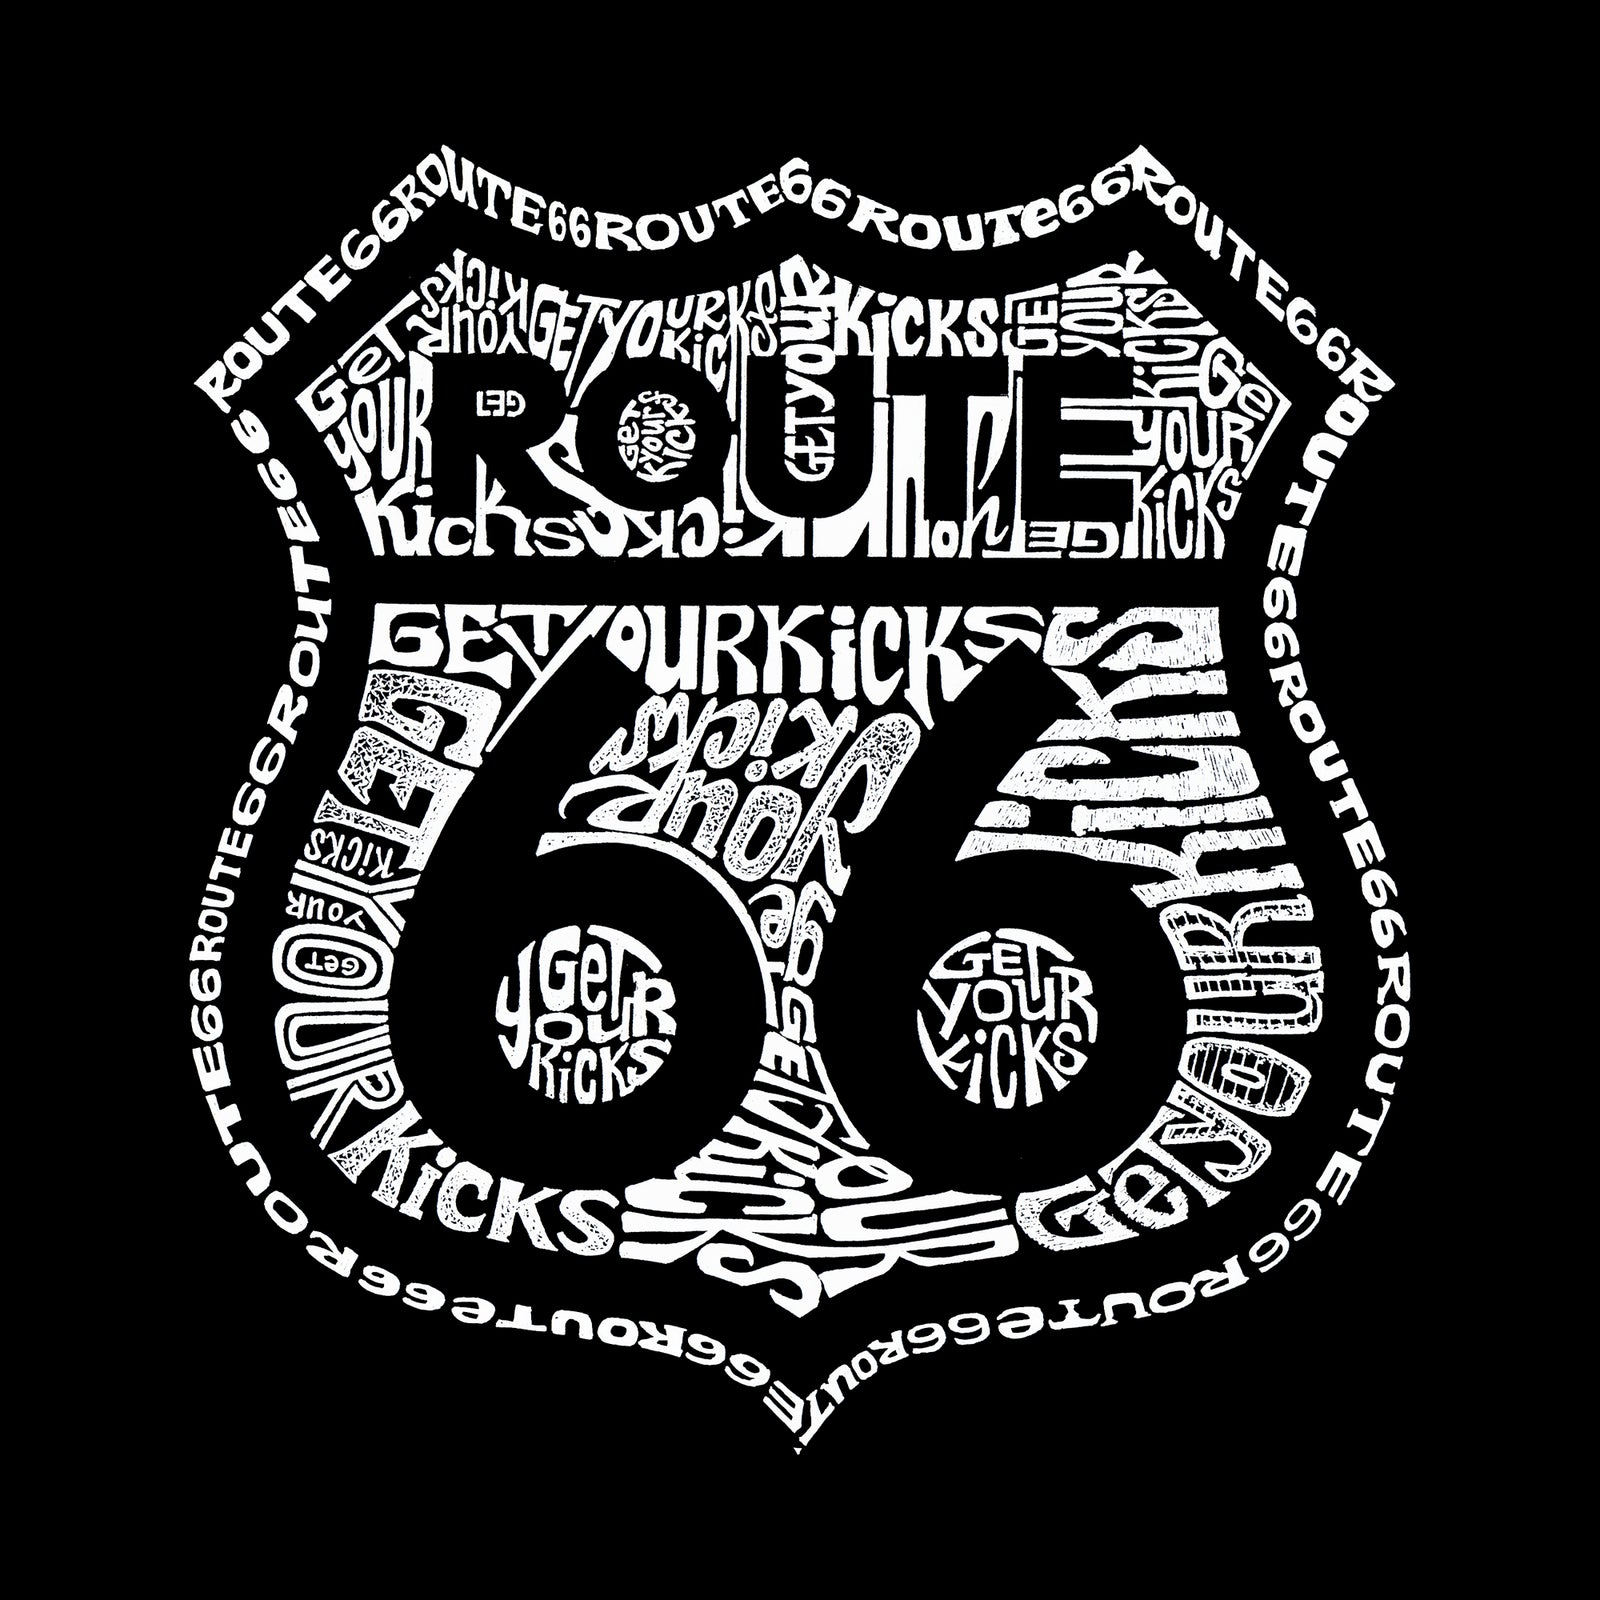 Girl's Long Sleeve - Get Your Kicks on Route 66